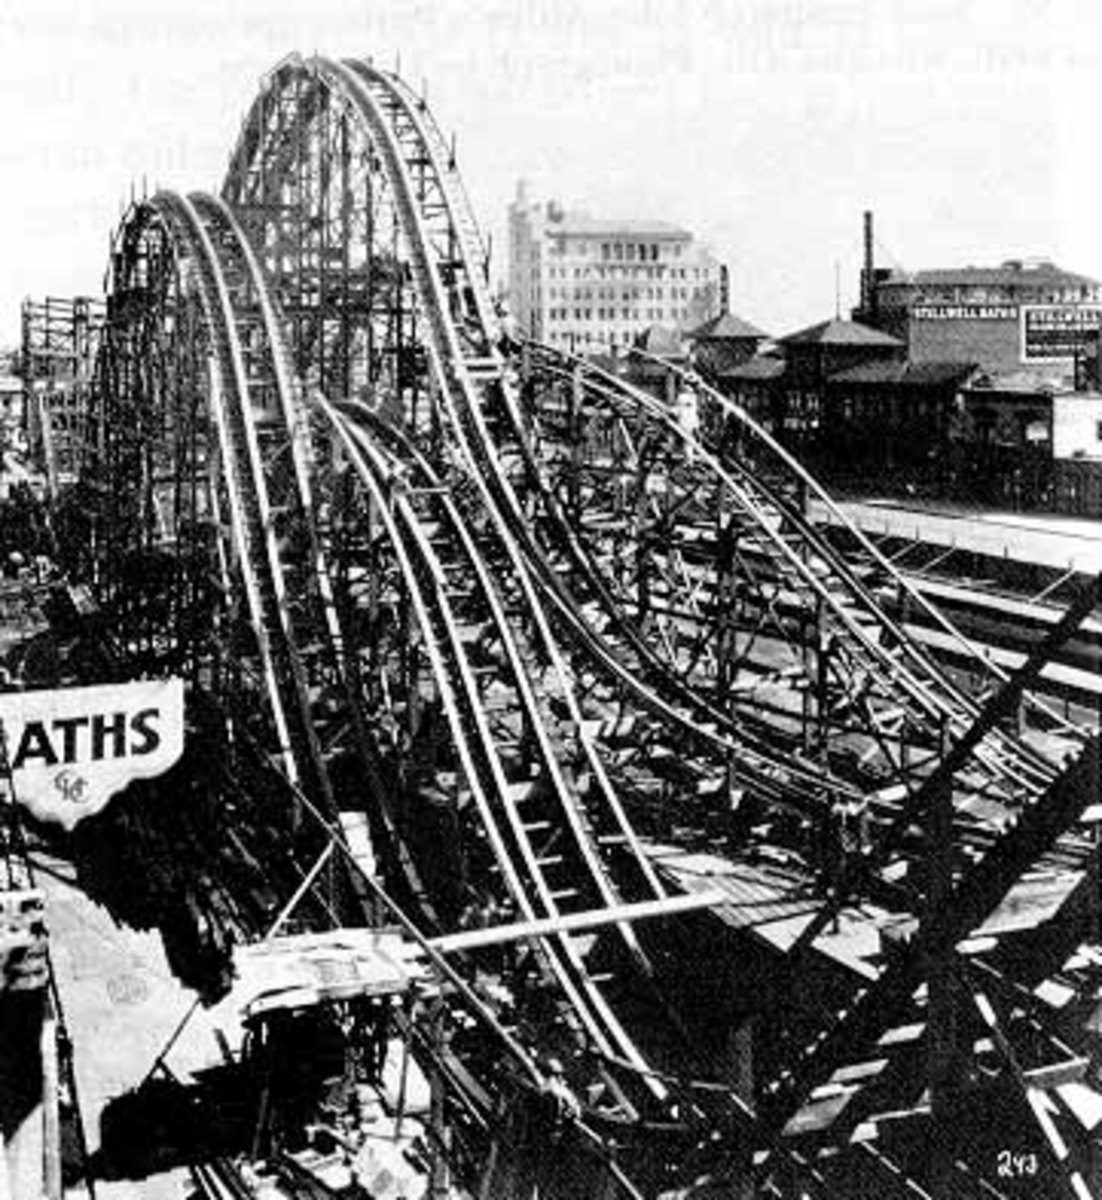 The Famous ThunderBolt- excellent Site to visit: http://www.ultimaterollercoaster.com/coasters/history/early_1900/coney_island.shtml